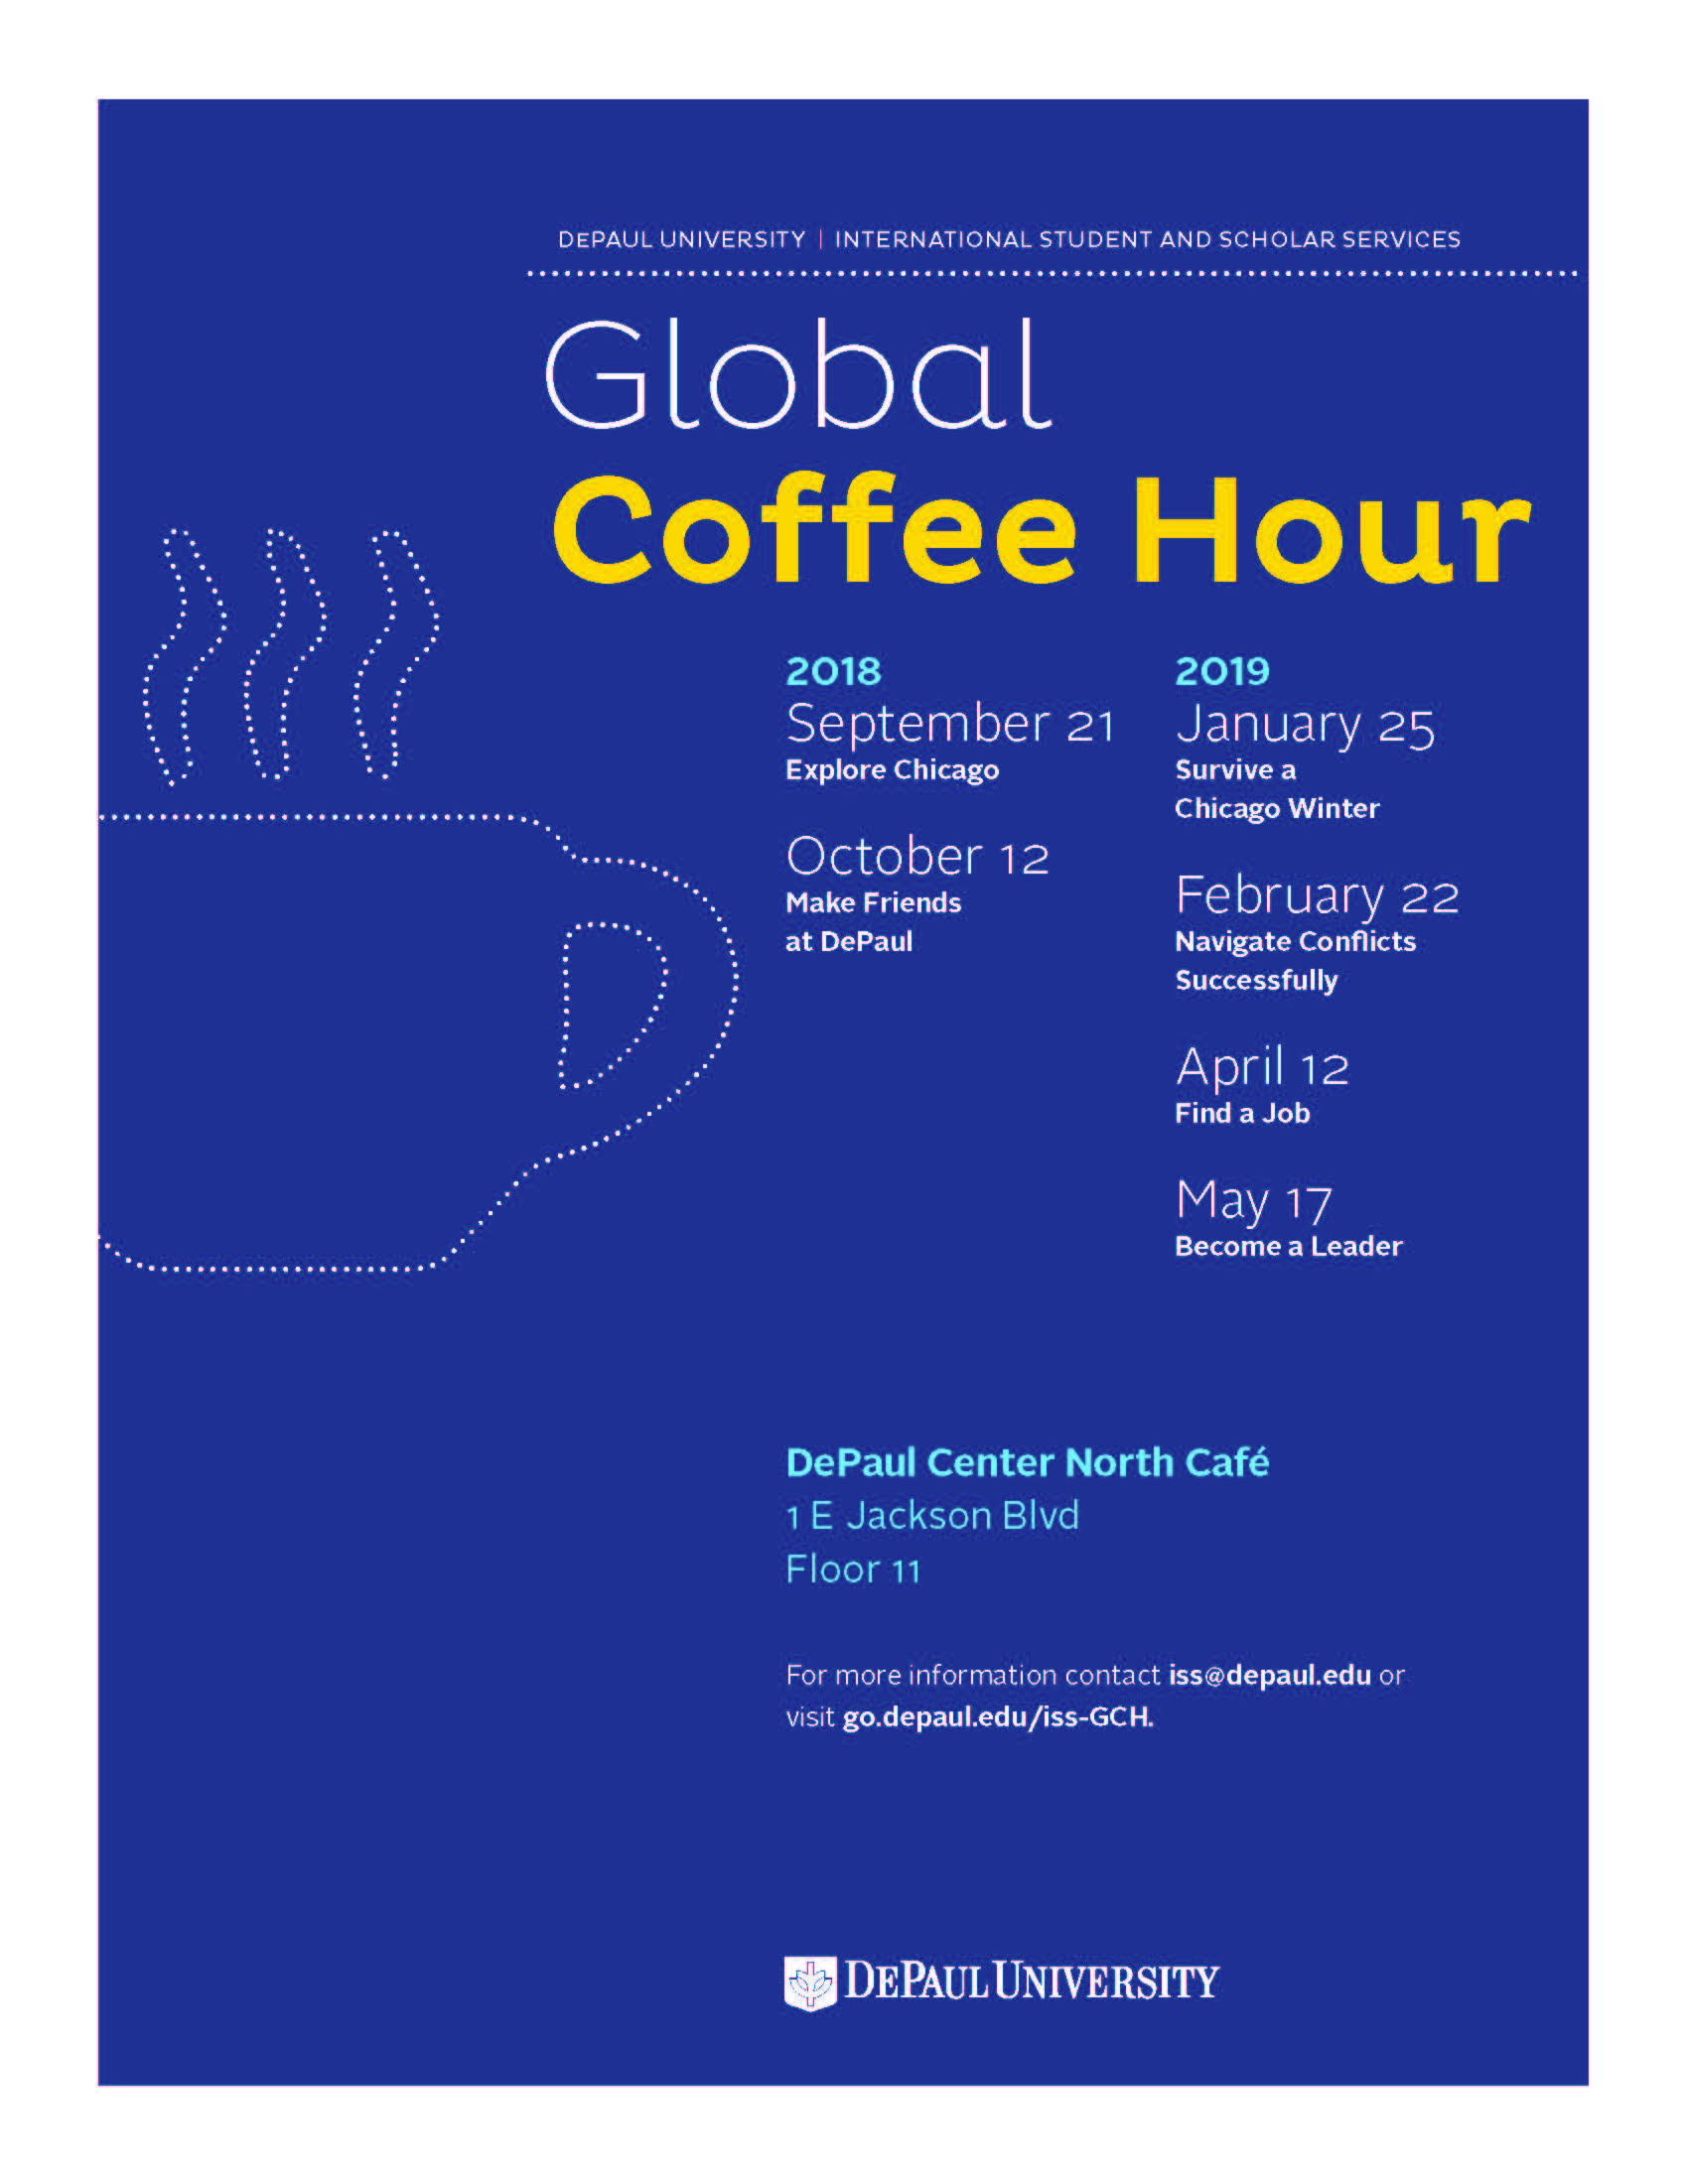 Global Coffee Hour 2018-19 Calendar